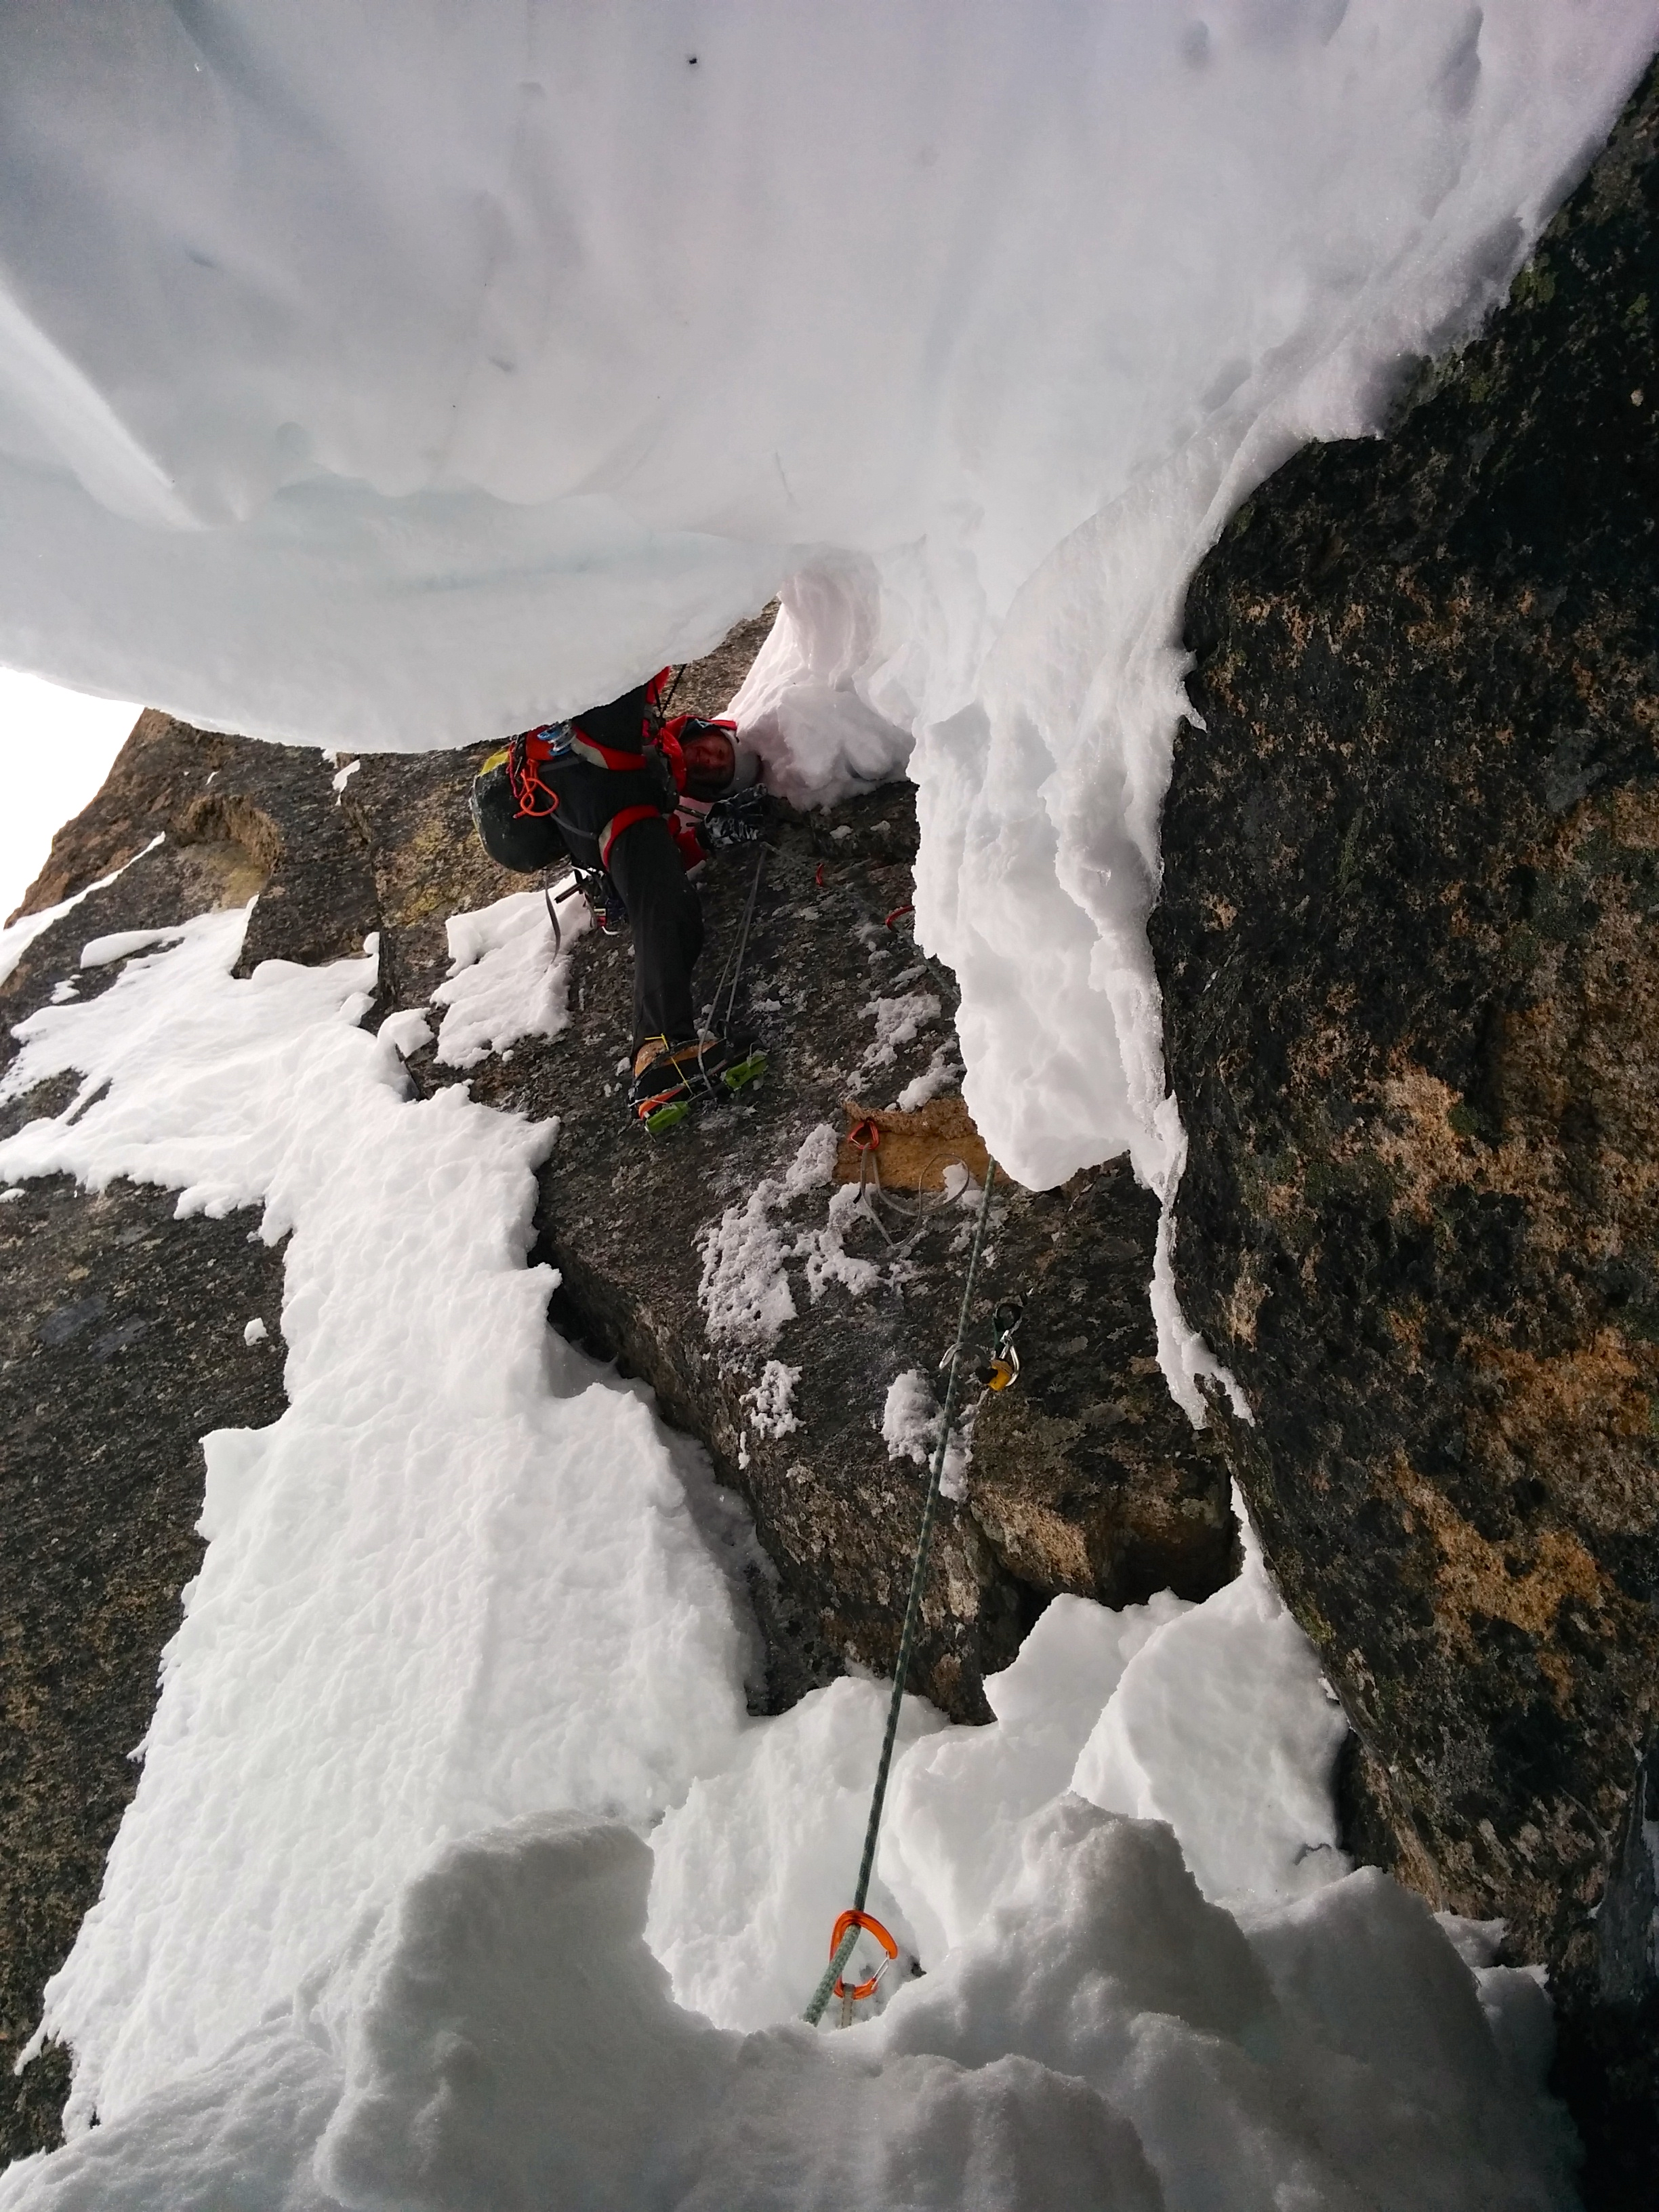 Aiding over the cornice after excavating the crack